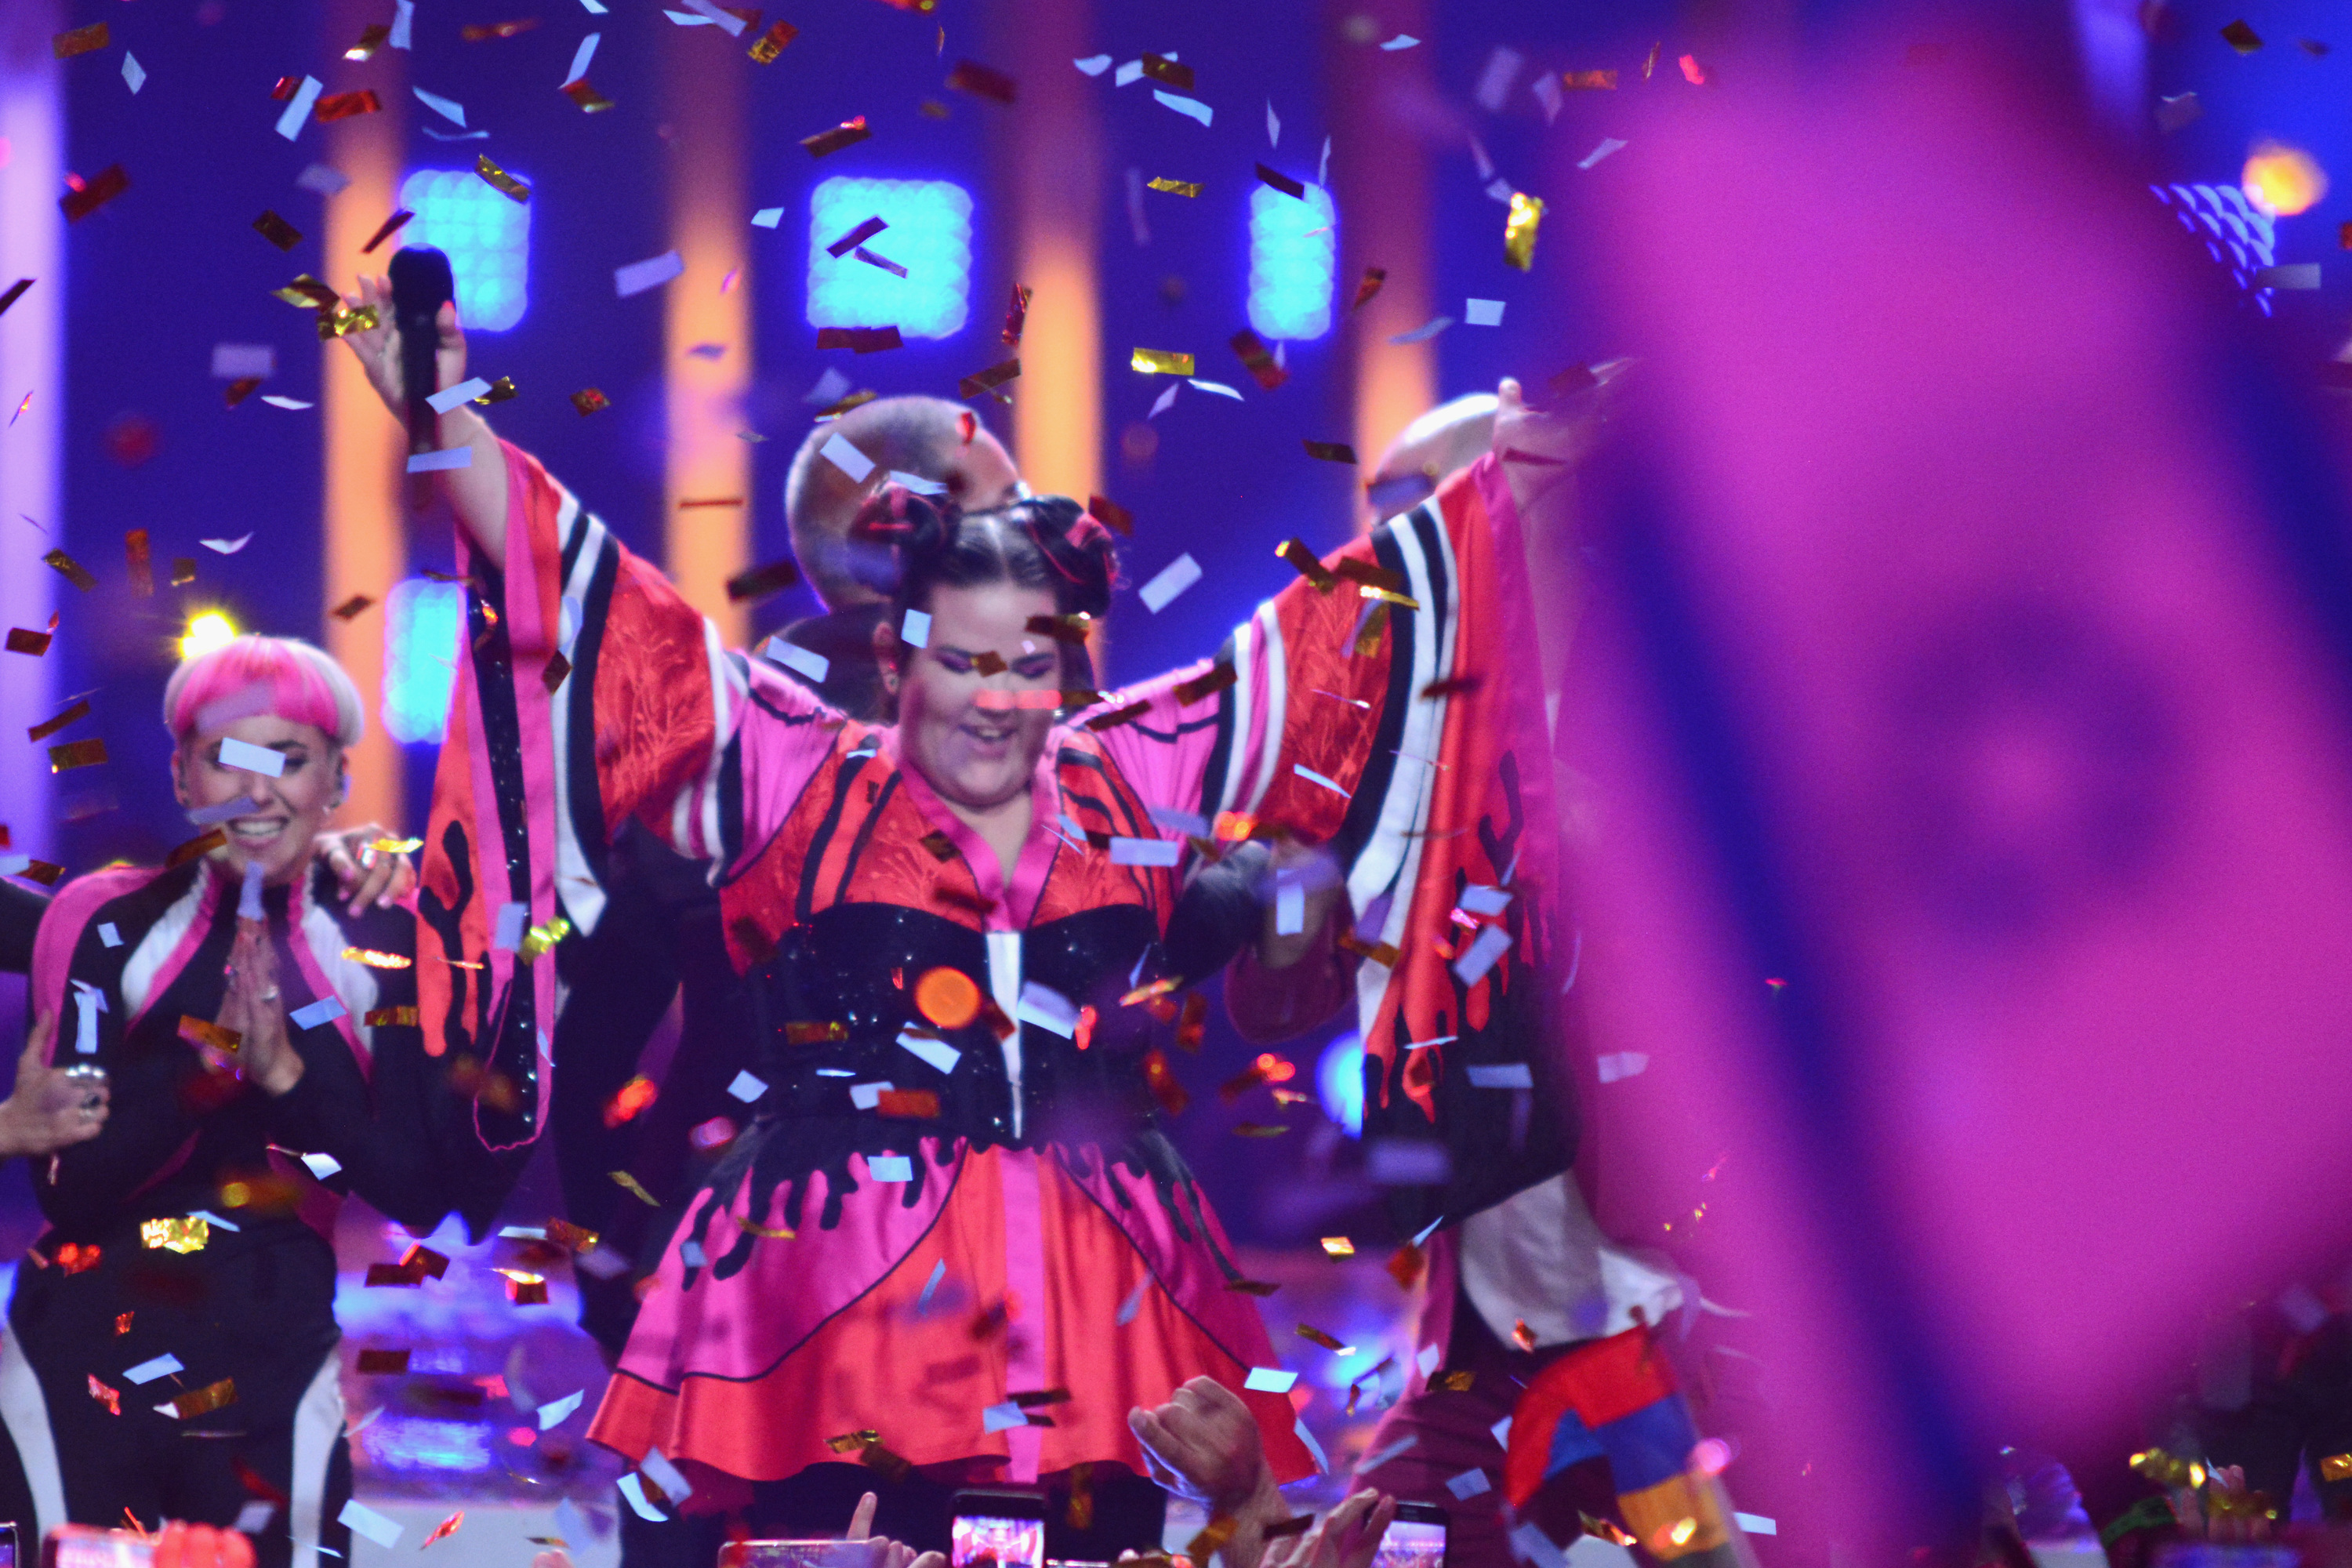 Israel for the win: Netta Barzilai takes the 2018 Eurovision title